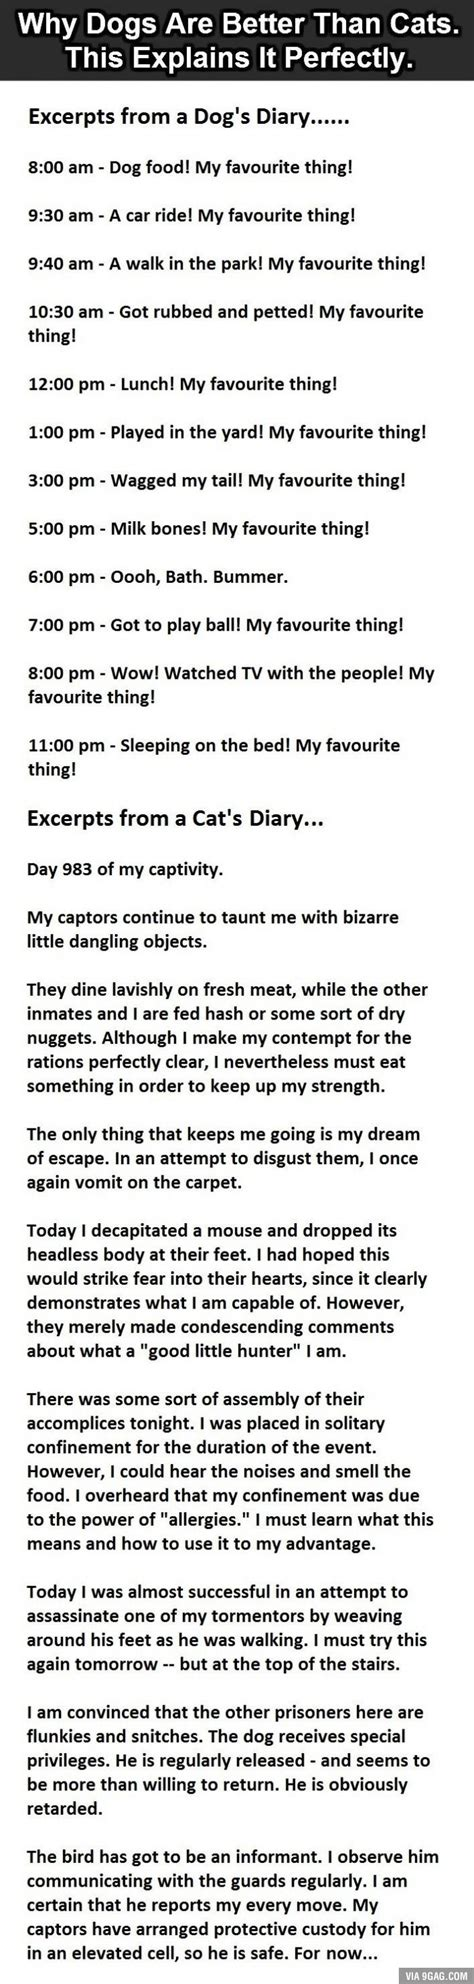 than better cats dogs why funny quotes cat true jokes dog joke 9gag quote stories humor diary story sayings